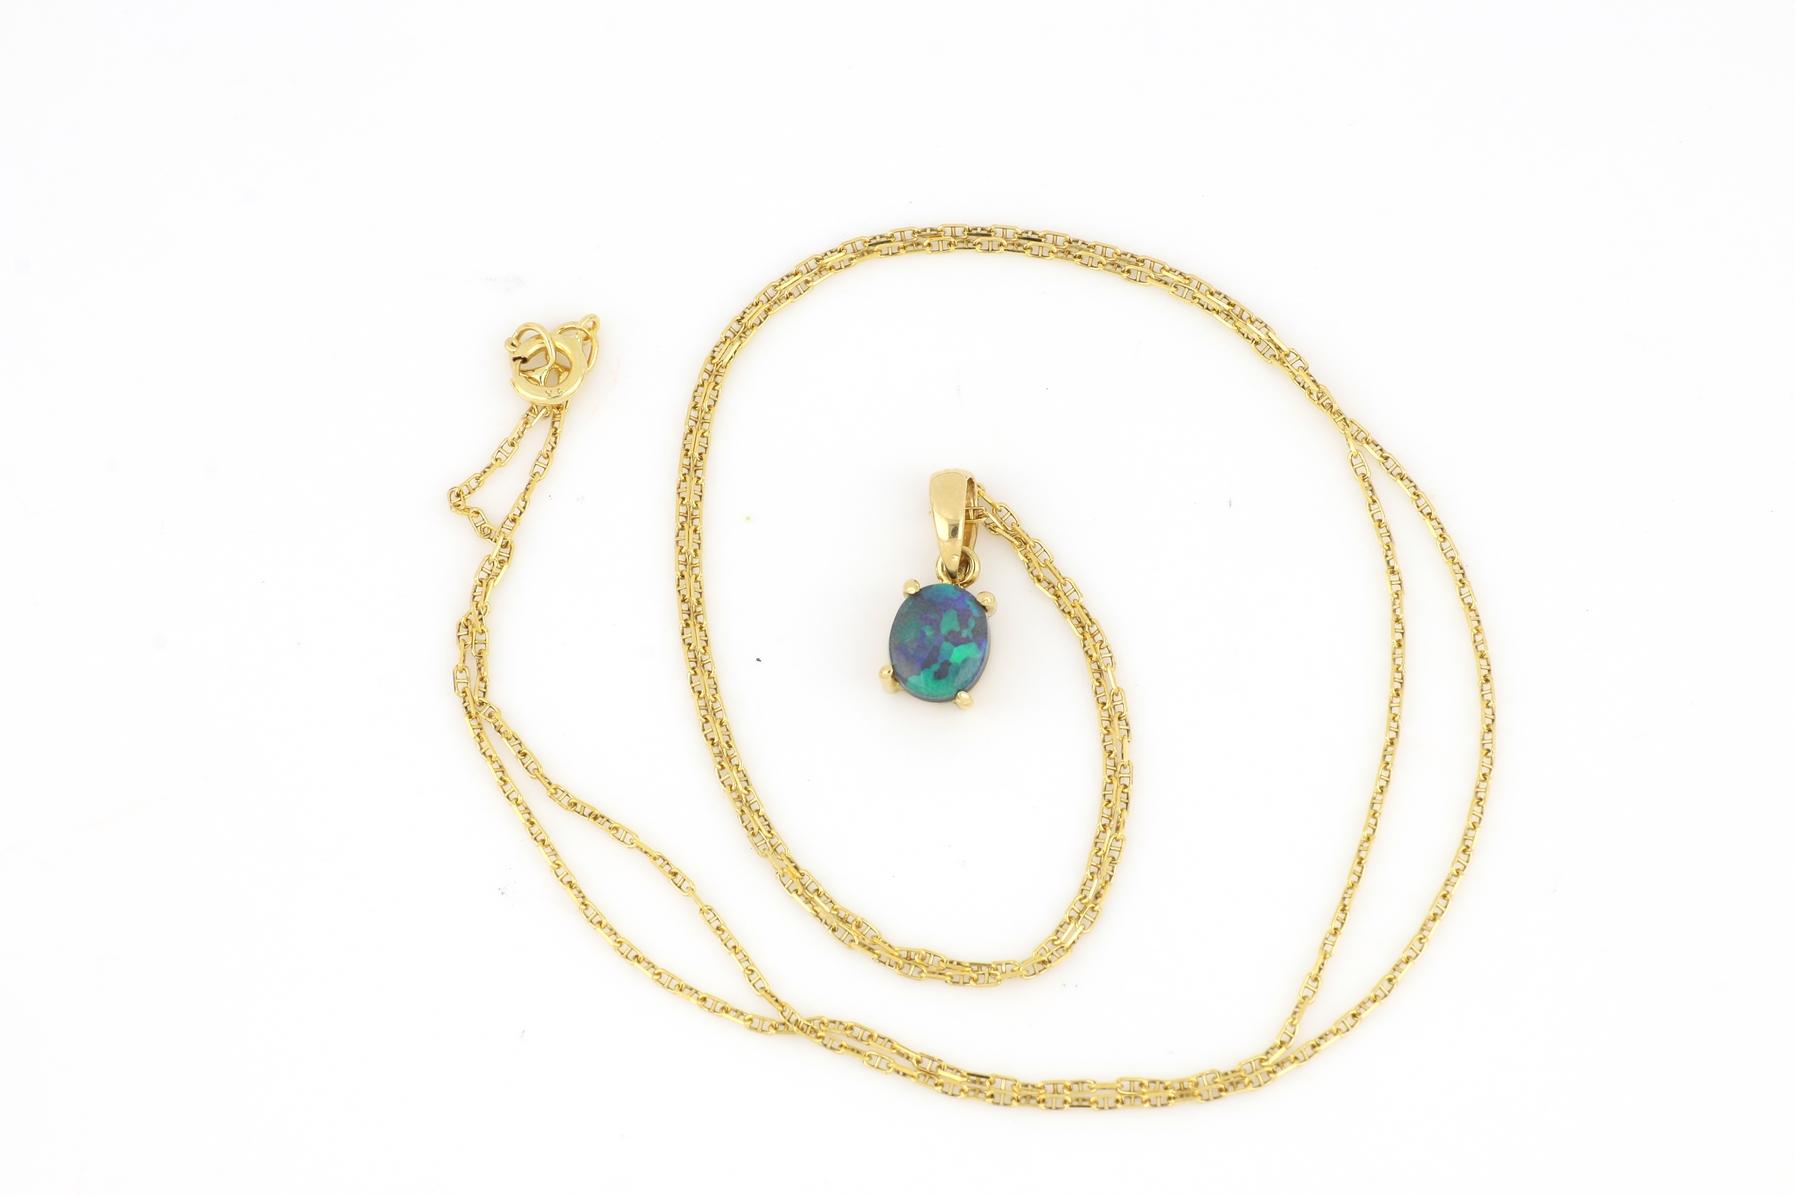 18ct yellow old opal pendant on 9ct gold neck chain